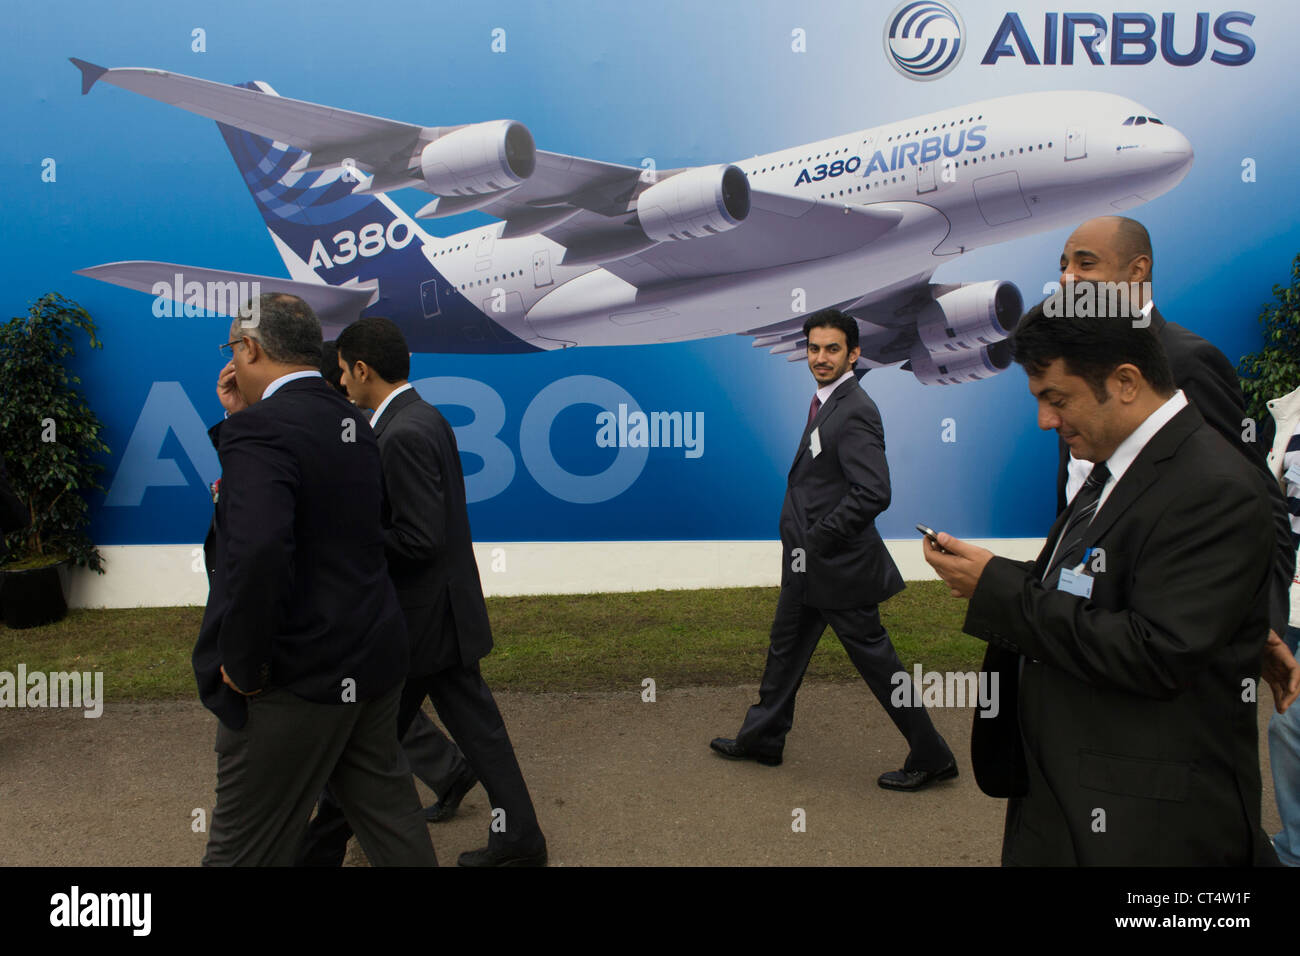 Delegates walk past a mural artwork of an A380 airliner outside one of the EADS company's chalets at the Farnborough - Stock Image